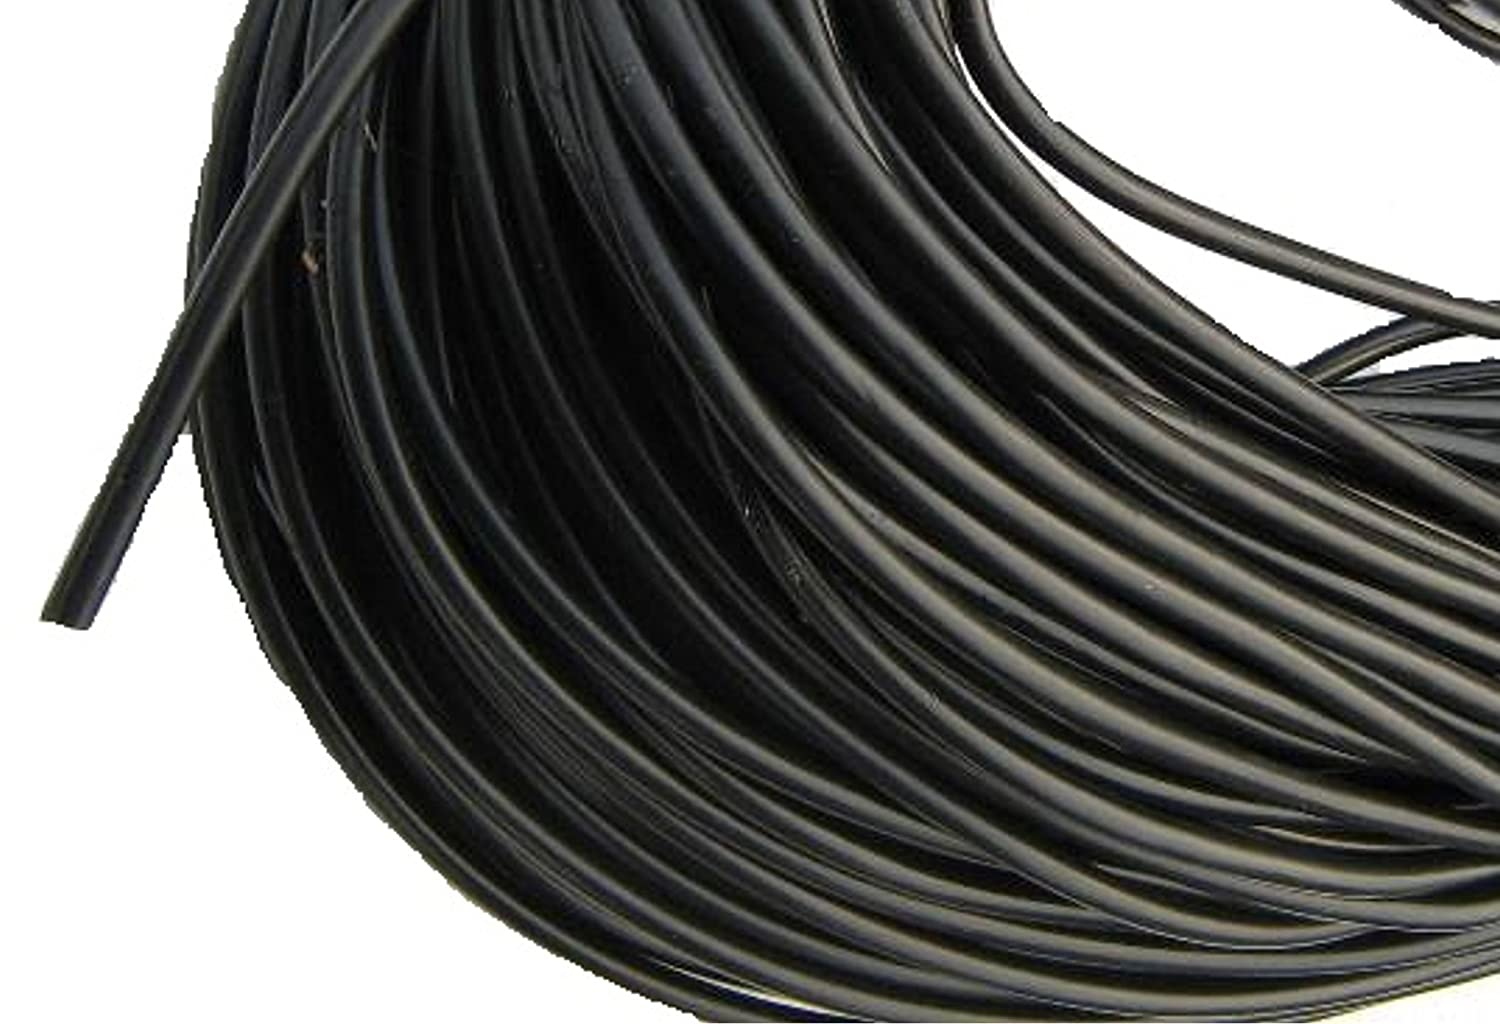 Black,flexible Micro irrigation pipe (4mm x 6mm)1,10,15,20,25,50,100,200m lengths (1M) E-BEST-OFFER